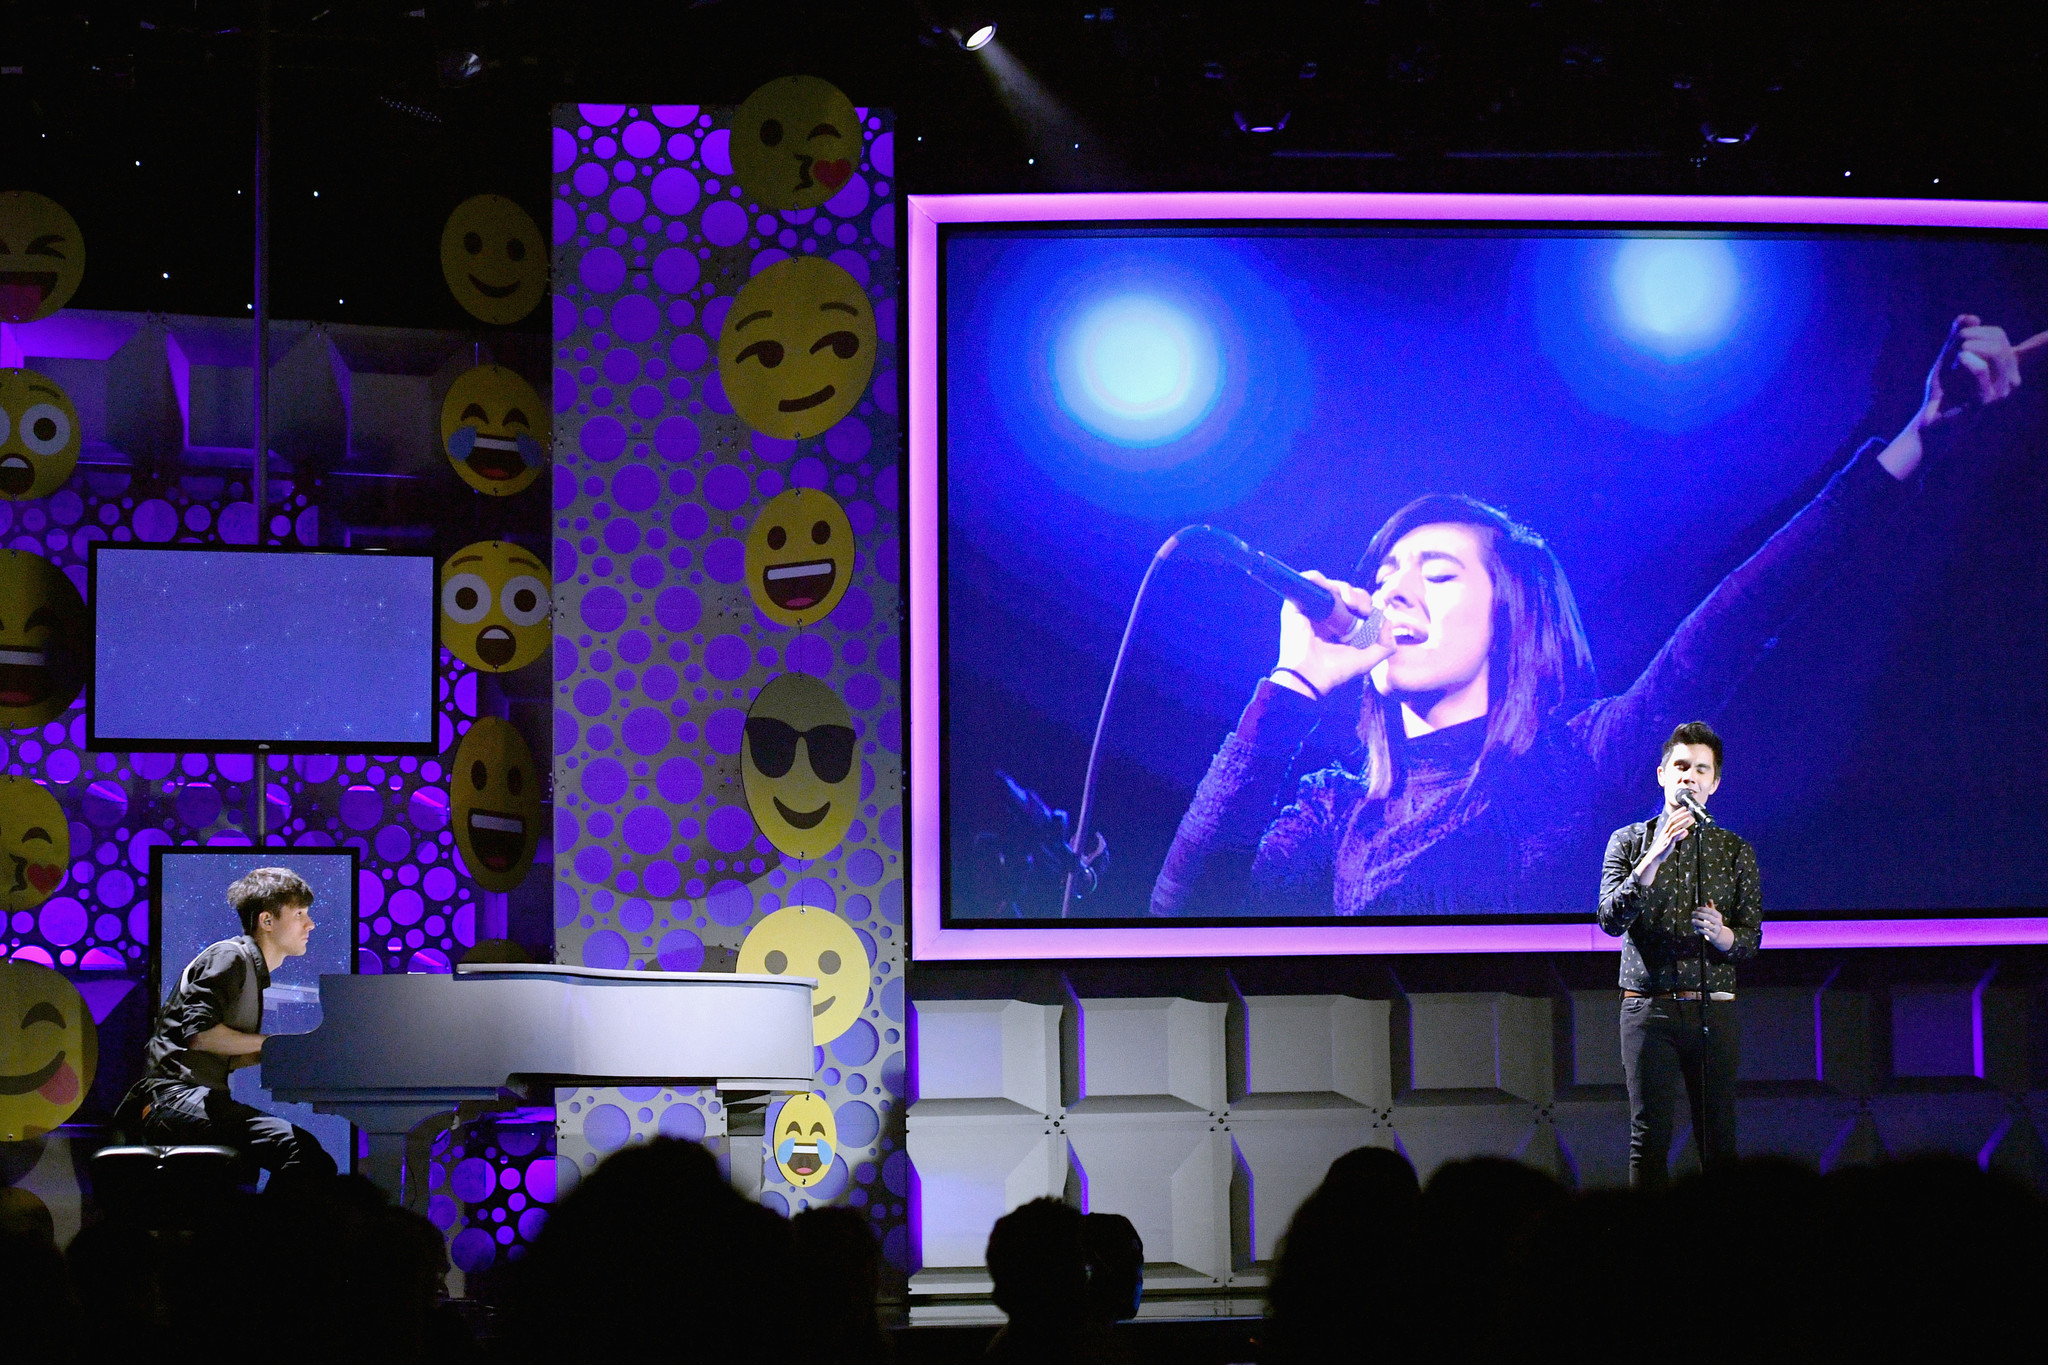 A view onstage during the Christina Grimmie Tribute at the 6th annual Streamy Awards hosted by King Bach and live streamed on YouTube at The Beverly Hilton Hotel on Oct. 4, 2016 in Beverly Hills, Calif.